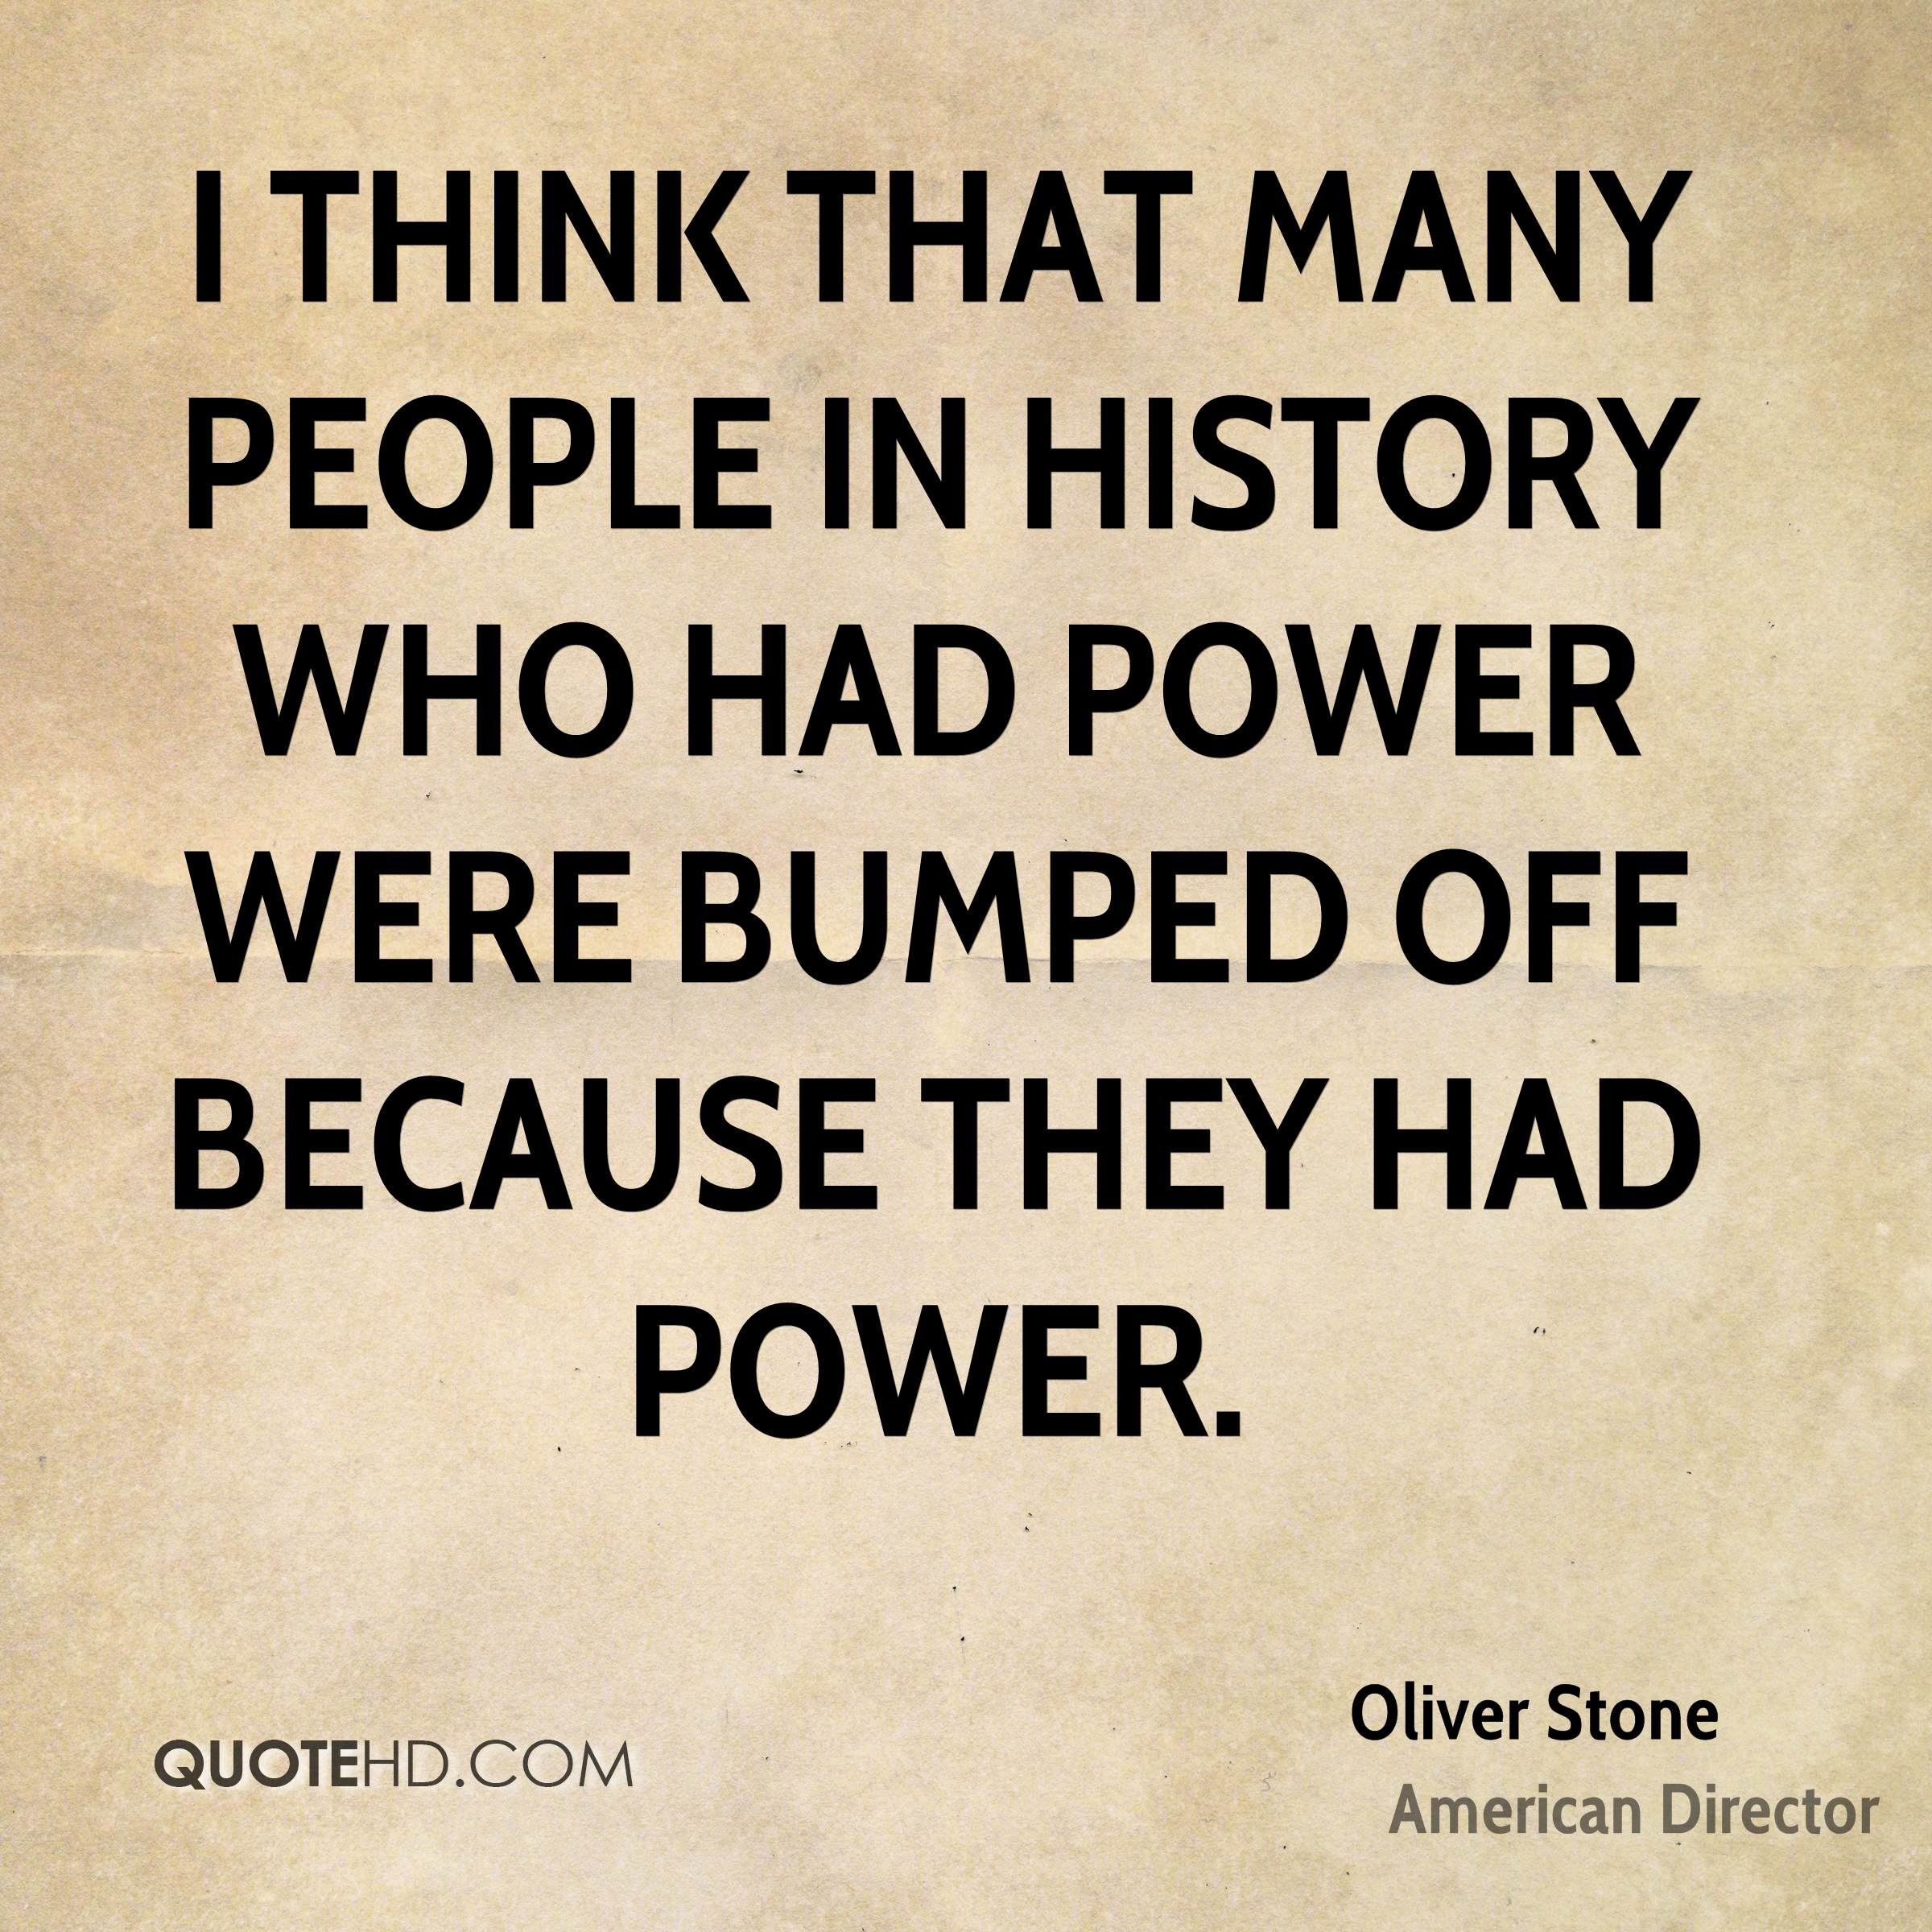 I think that many people in history who had power were bumped off because they had power.